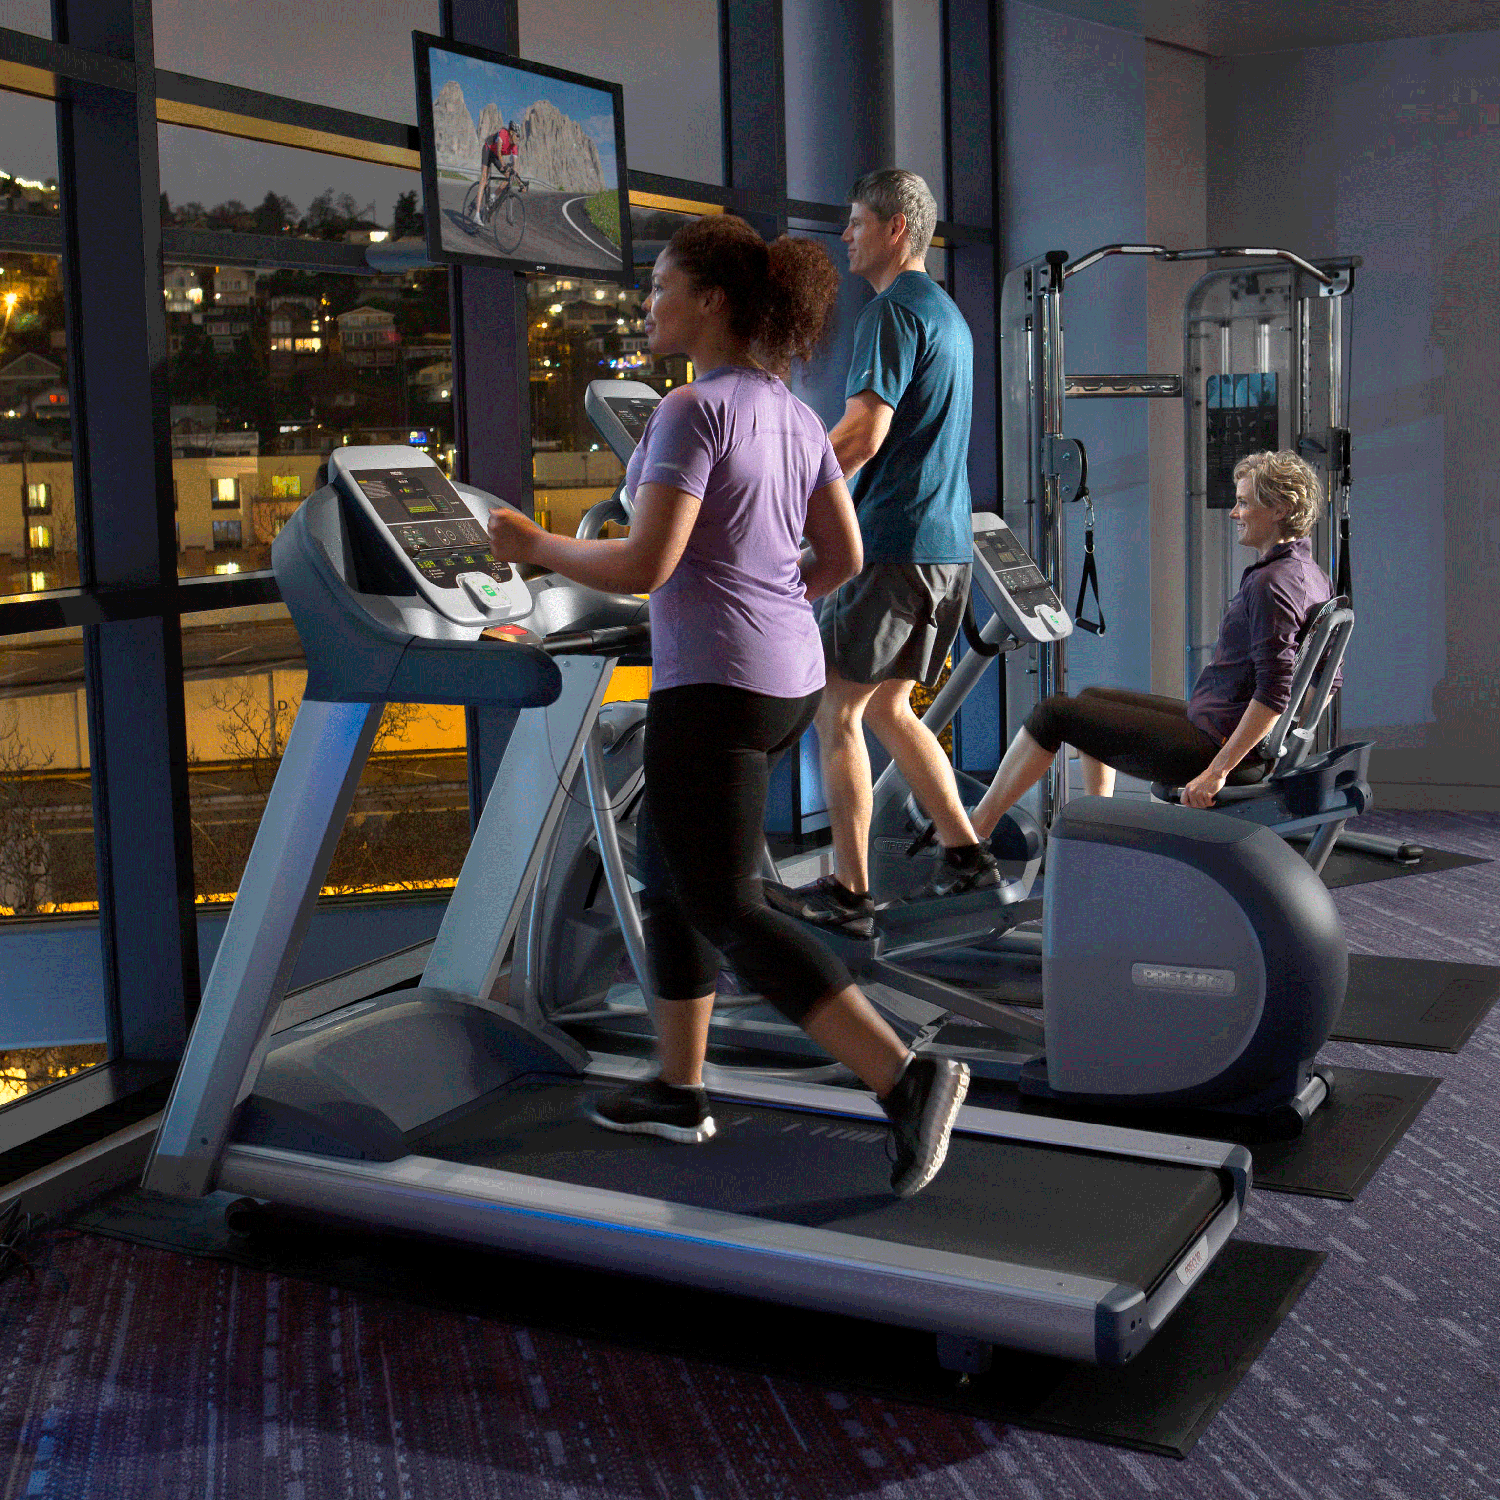 Hospitality operators how big should your fitness room be